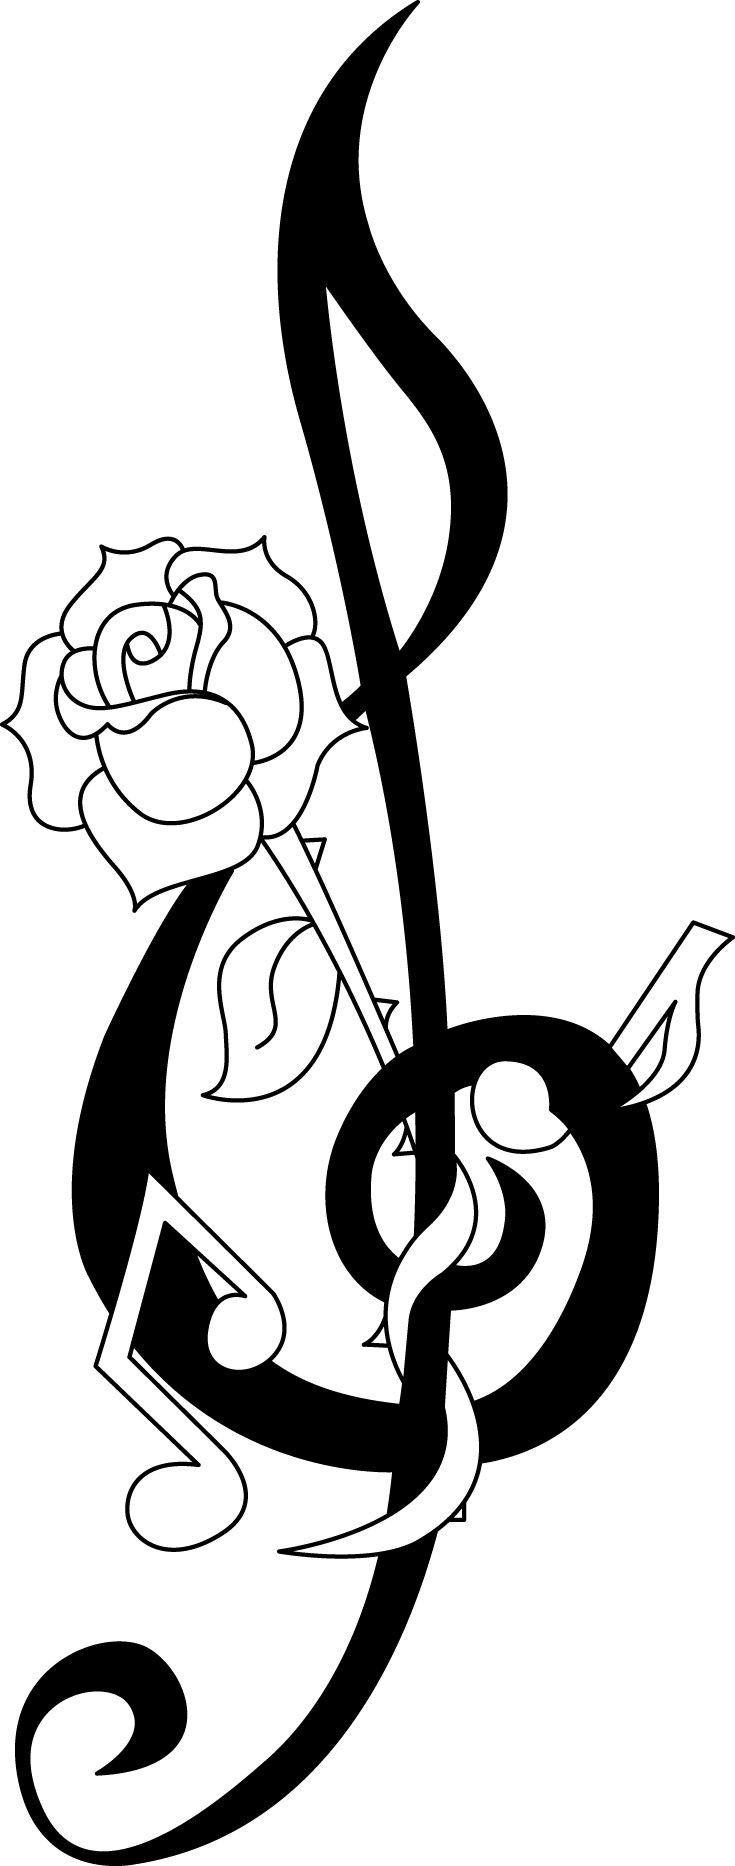 music rose tribal tattoo music note pinterest tattoo tatoo and stenciling. Black Bedroom Furniture Sets. Home Design Ideas